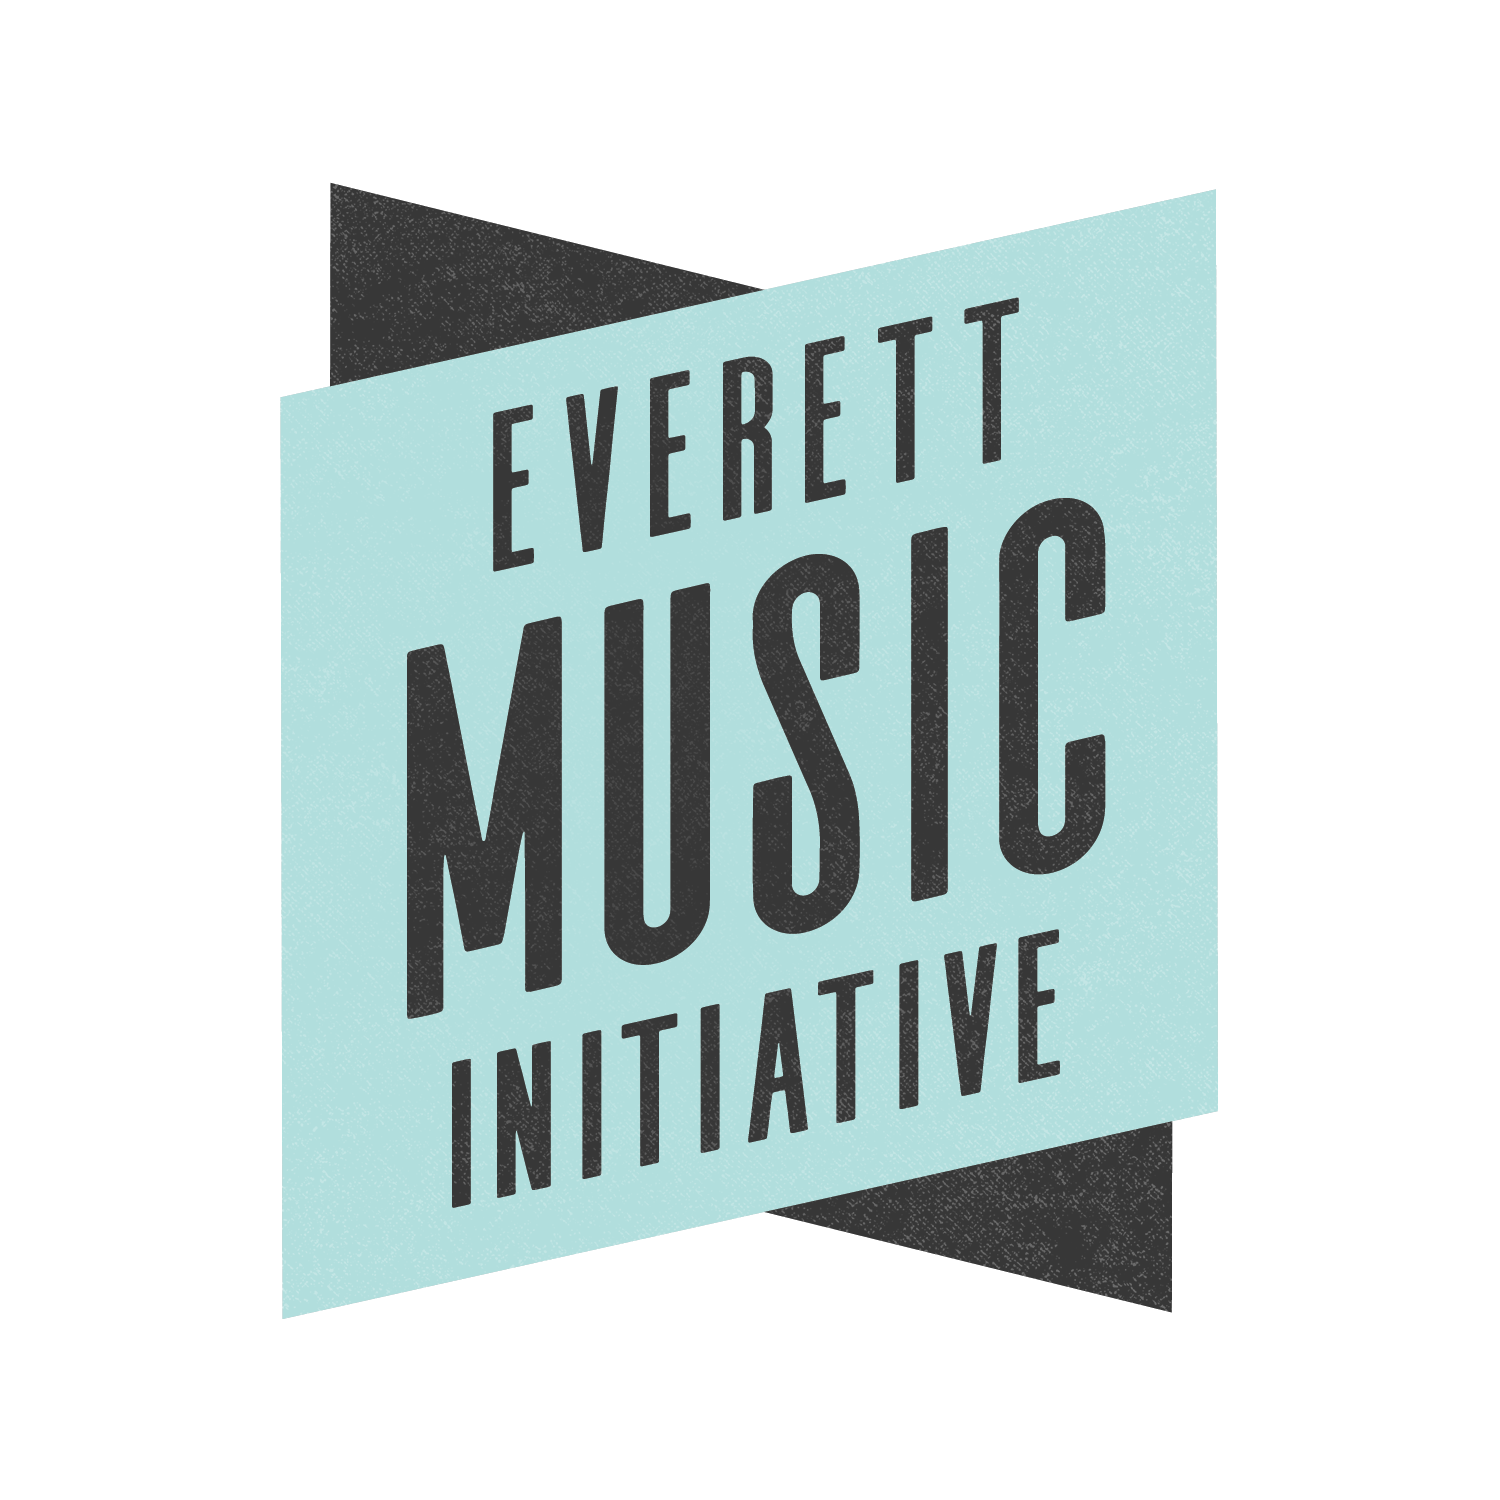 Everett Music Initiative